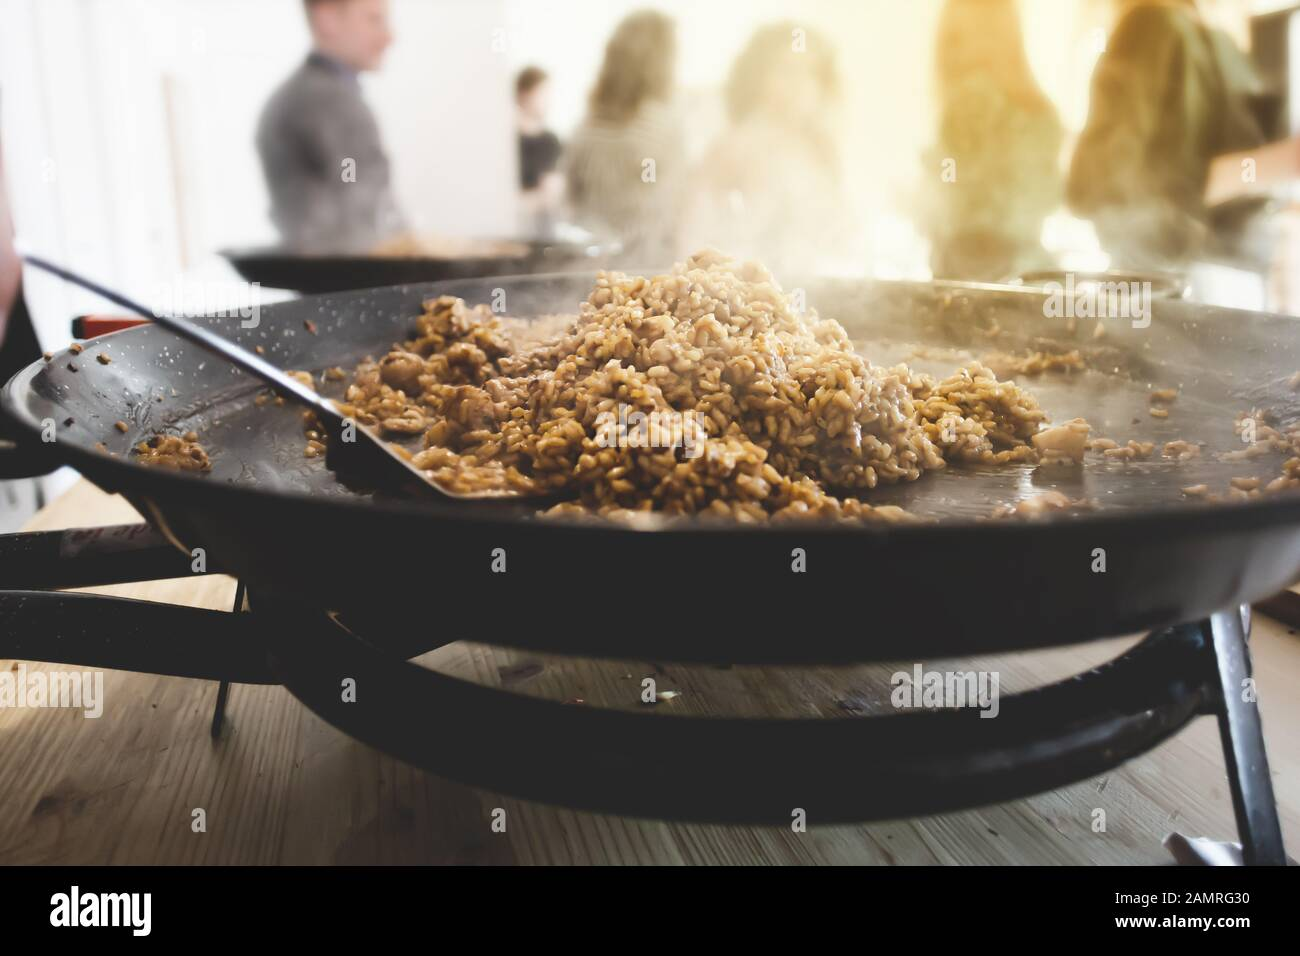 Paella pan with traditional Spanish food usually prepared with rice, meat, seafood Stock Photo